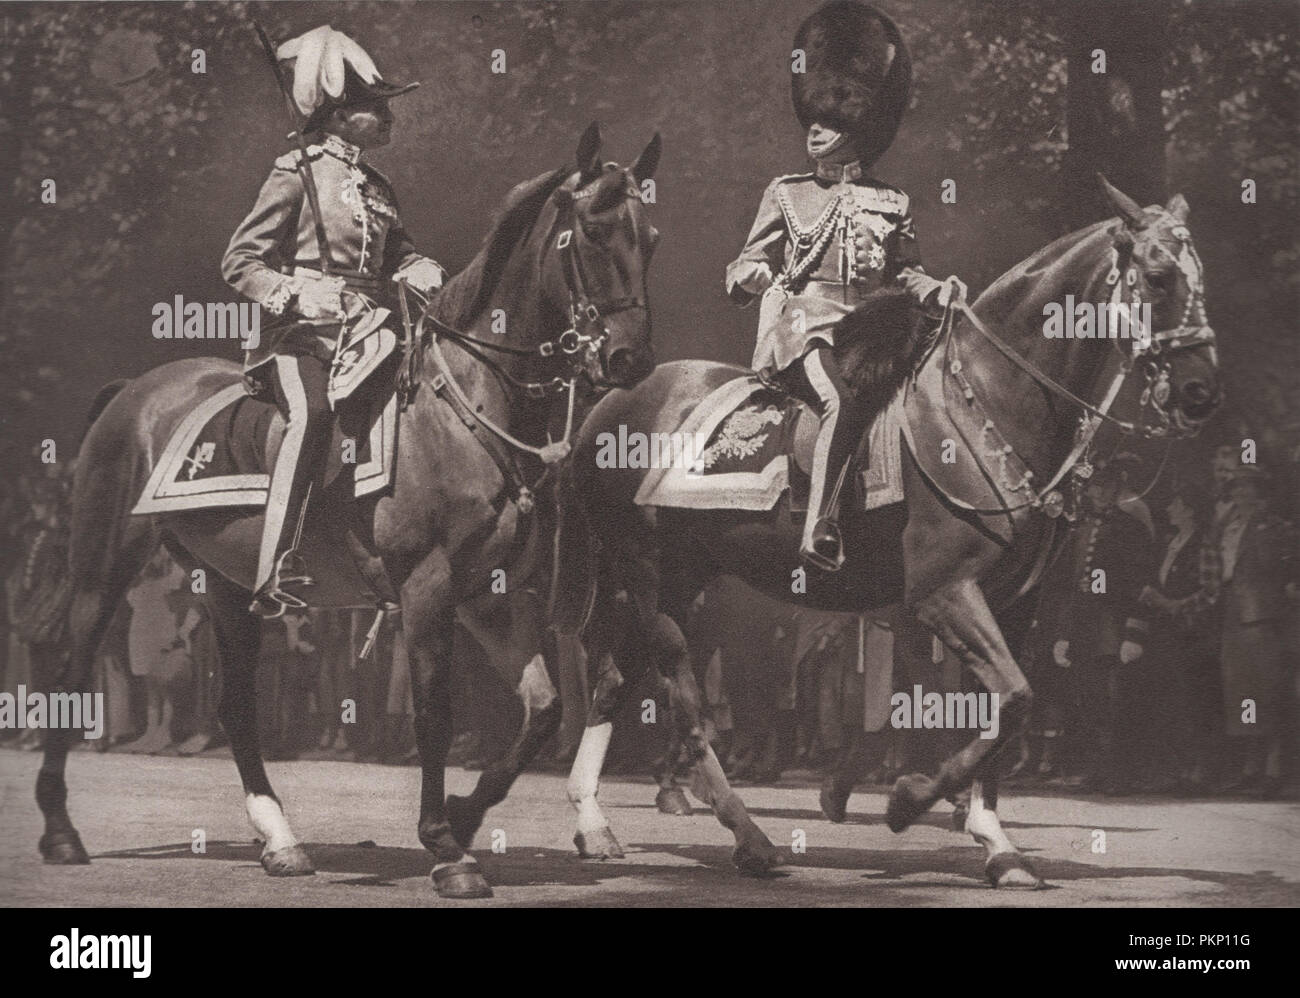 Edward the Eighth on horseback wearing military uniform at the trooping the colour ceremony in 1936 after the attempted assasination attempt by George McMahon.  McMahon aka Jerome Bannigan was arrested by the police on Constitution Hill during the trooping the colour ceremony on 16 July 1936 where he drew a revolver and threw it at the king as Edward VIII rode past.  McMahon was sentenced to 12 months imprisonment and hard labor on 14 September 1936.  He said that he was protesting the failure of authorities to respond to McMahon's reports of a plot to kill the king - Stock Image